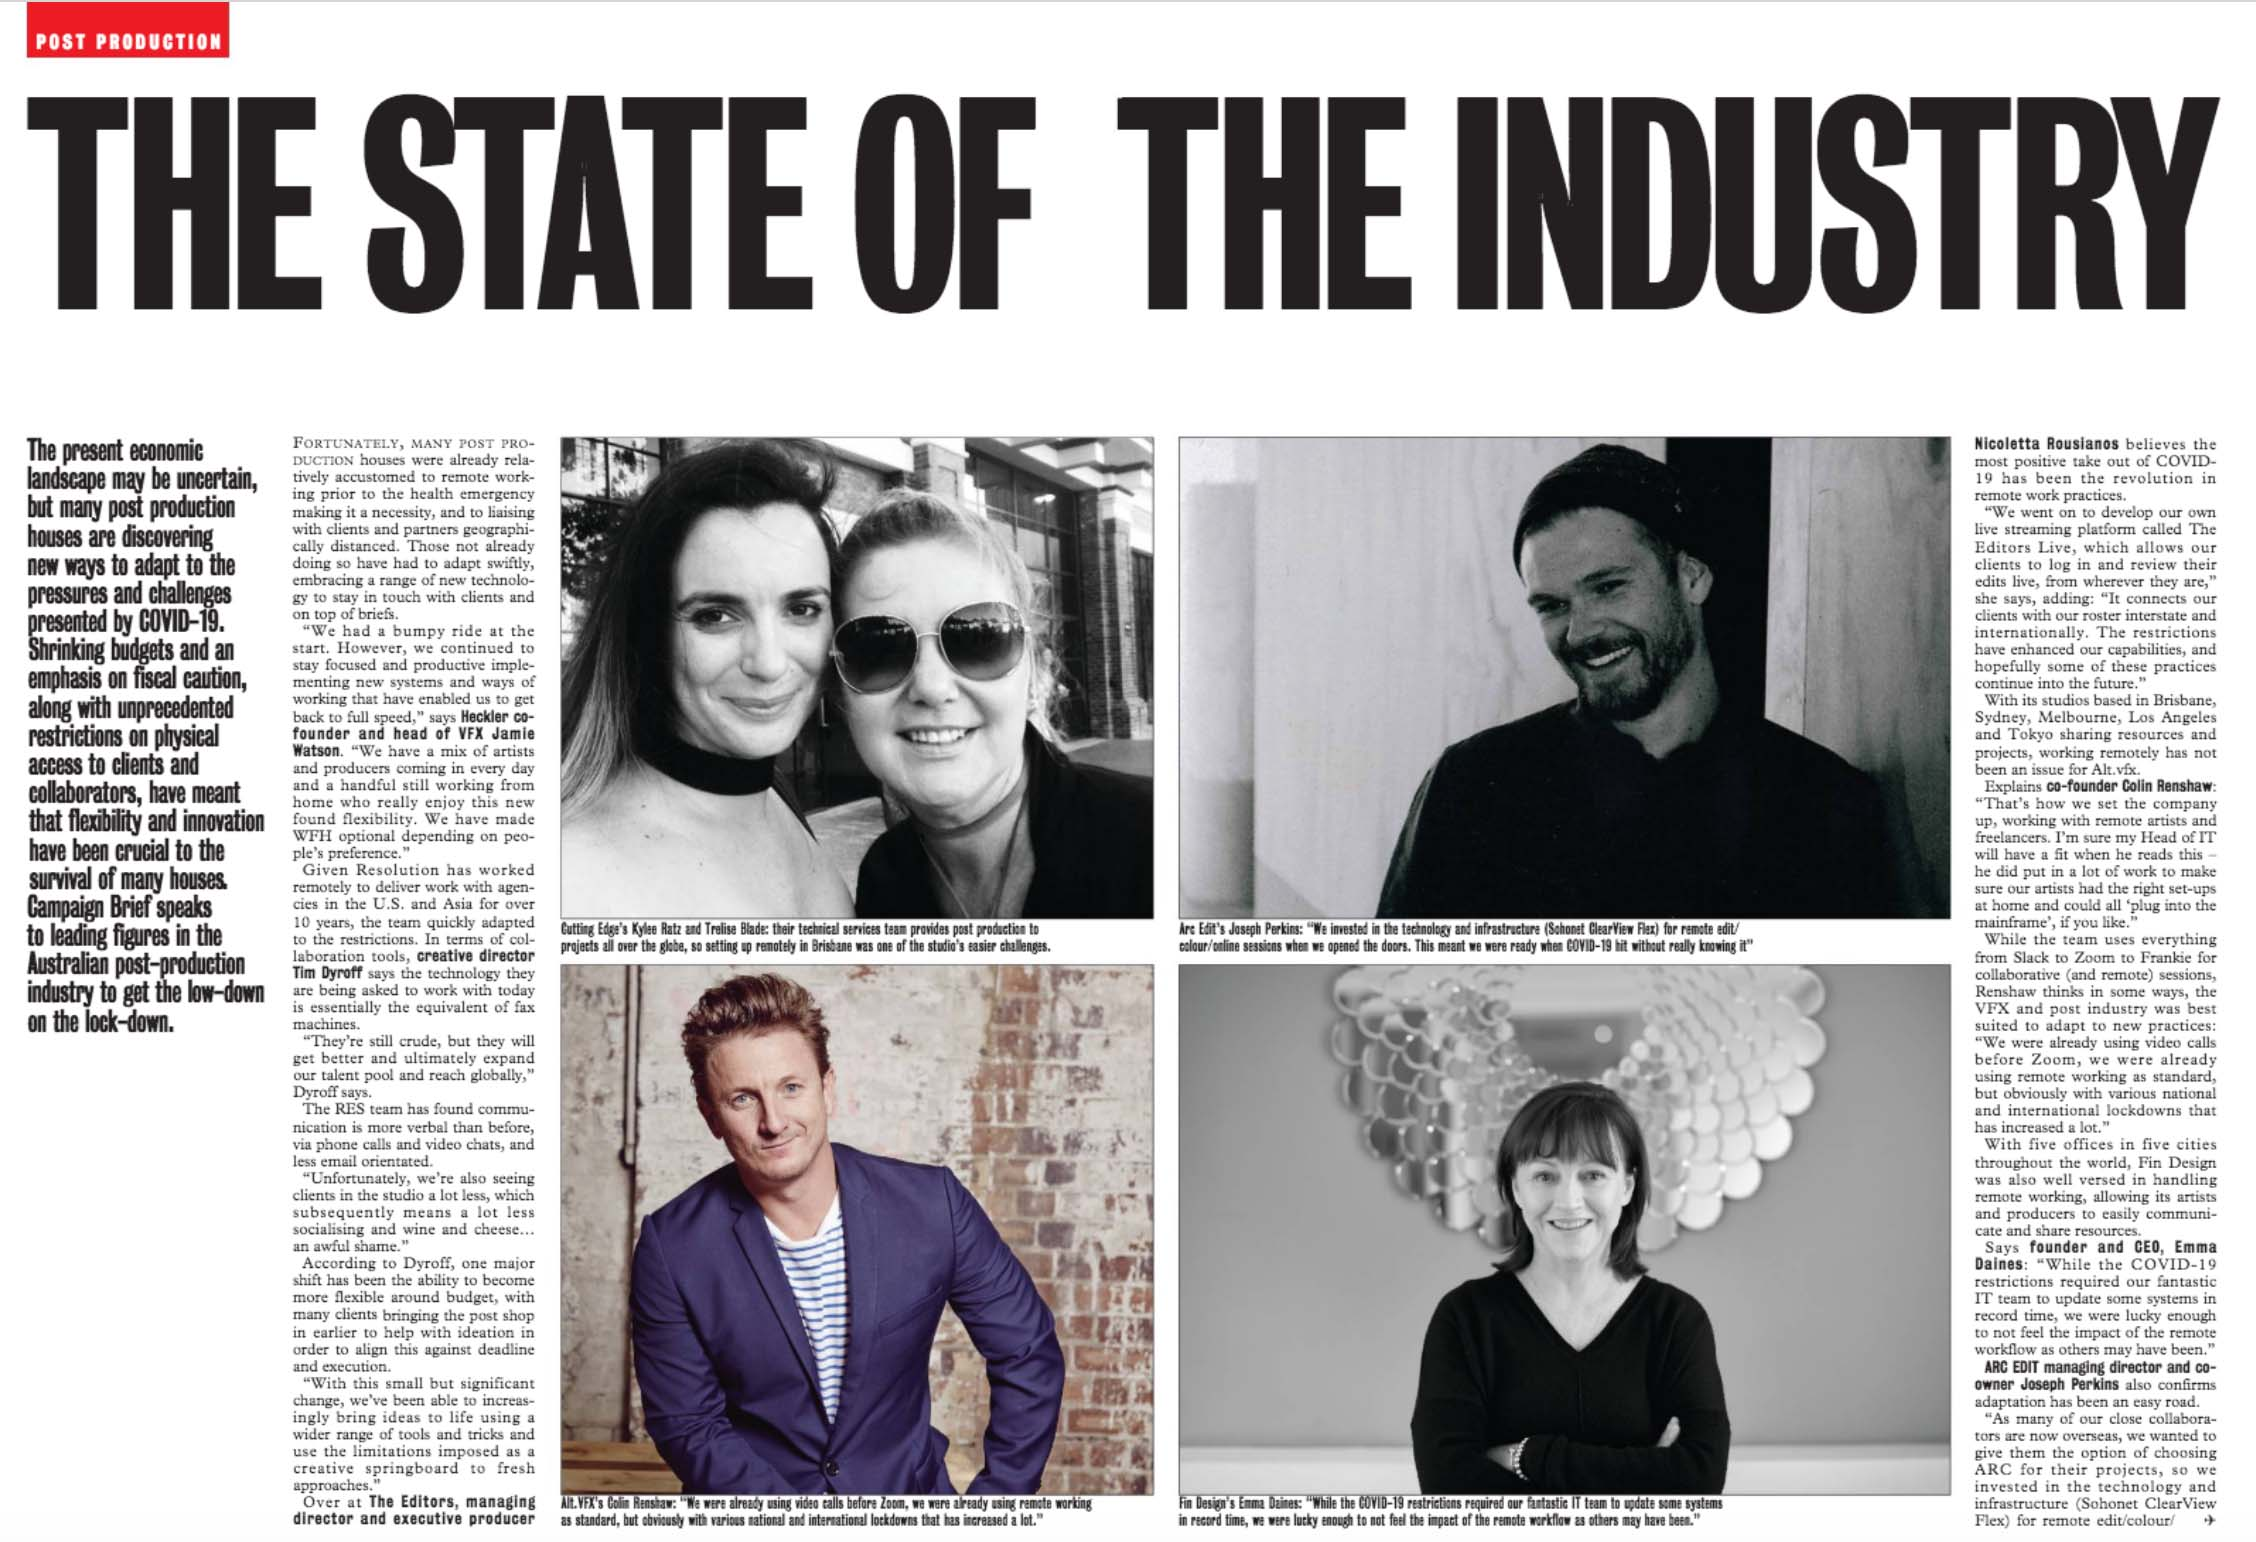 POST PRODUCTION: THESTATEOFTHEINDUSTRY ~ discovering new ways to adapt to the pressures and challenges presented by COVID-19